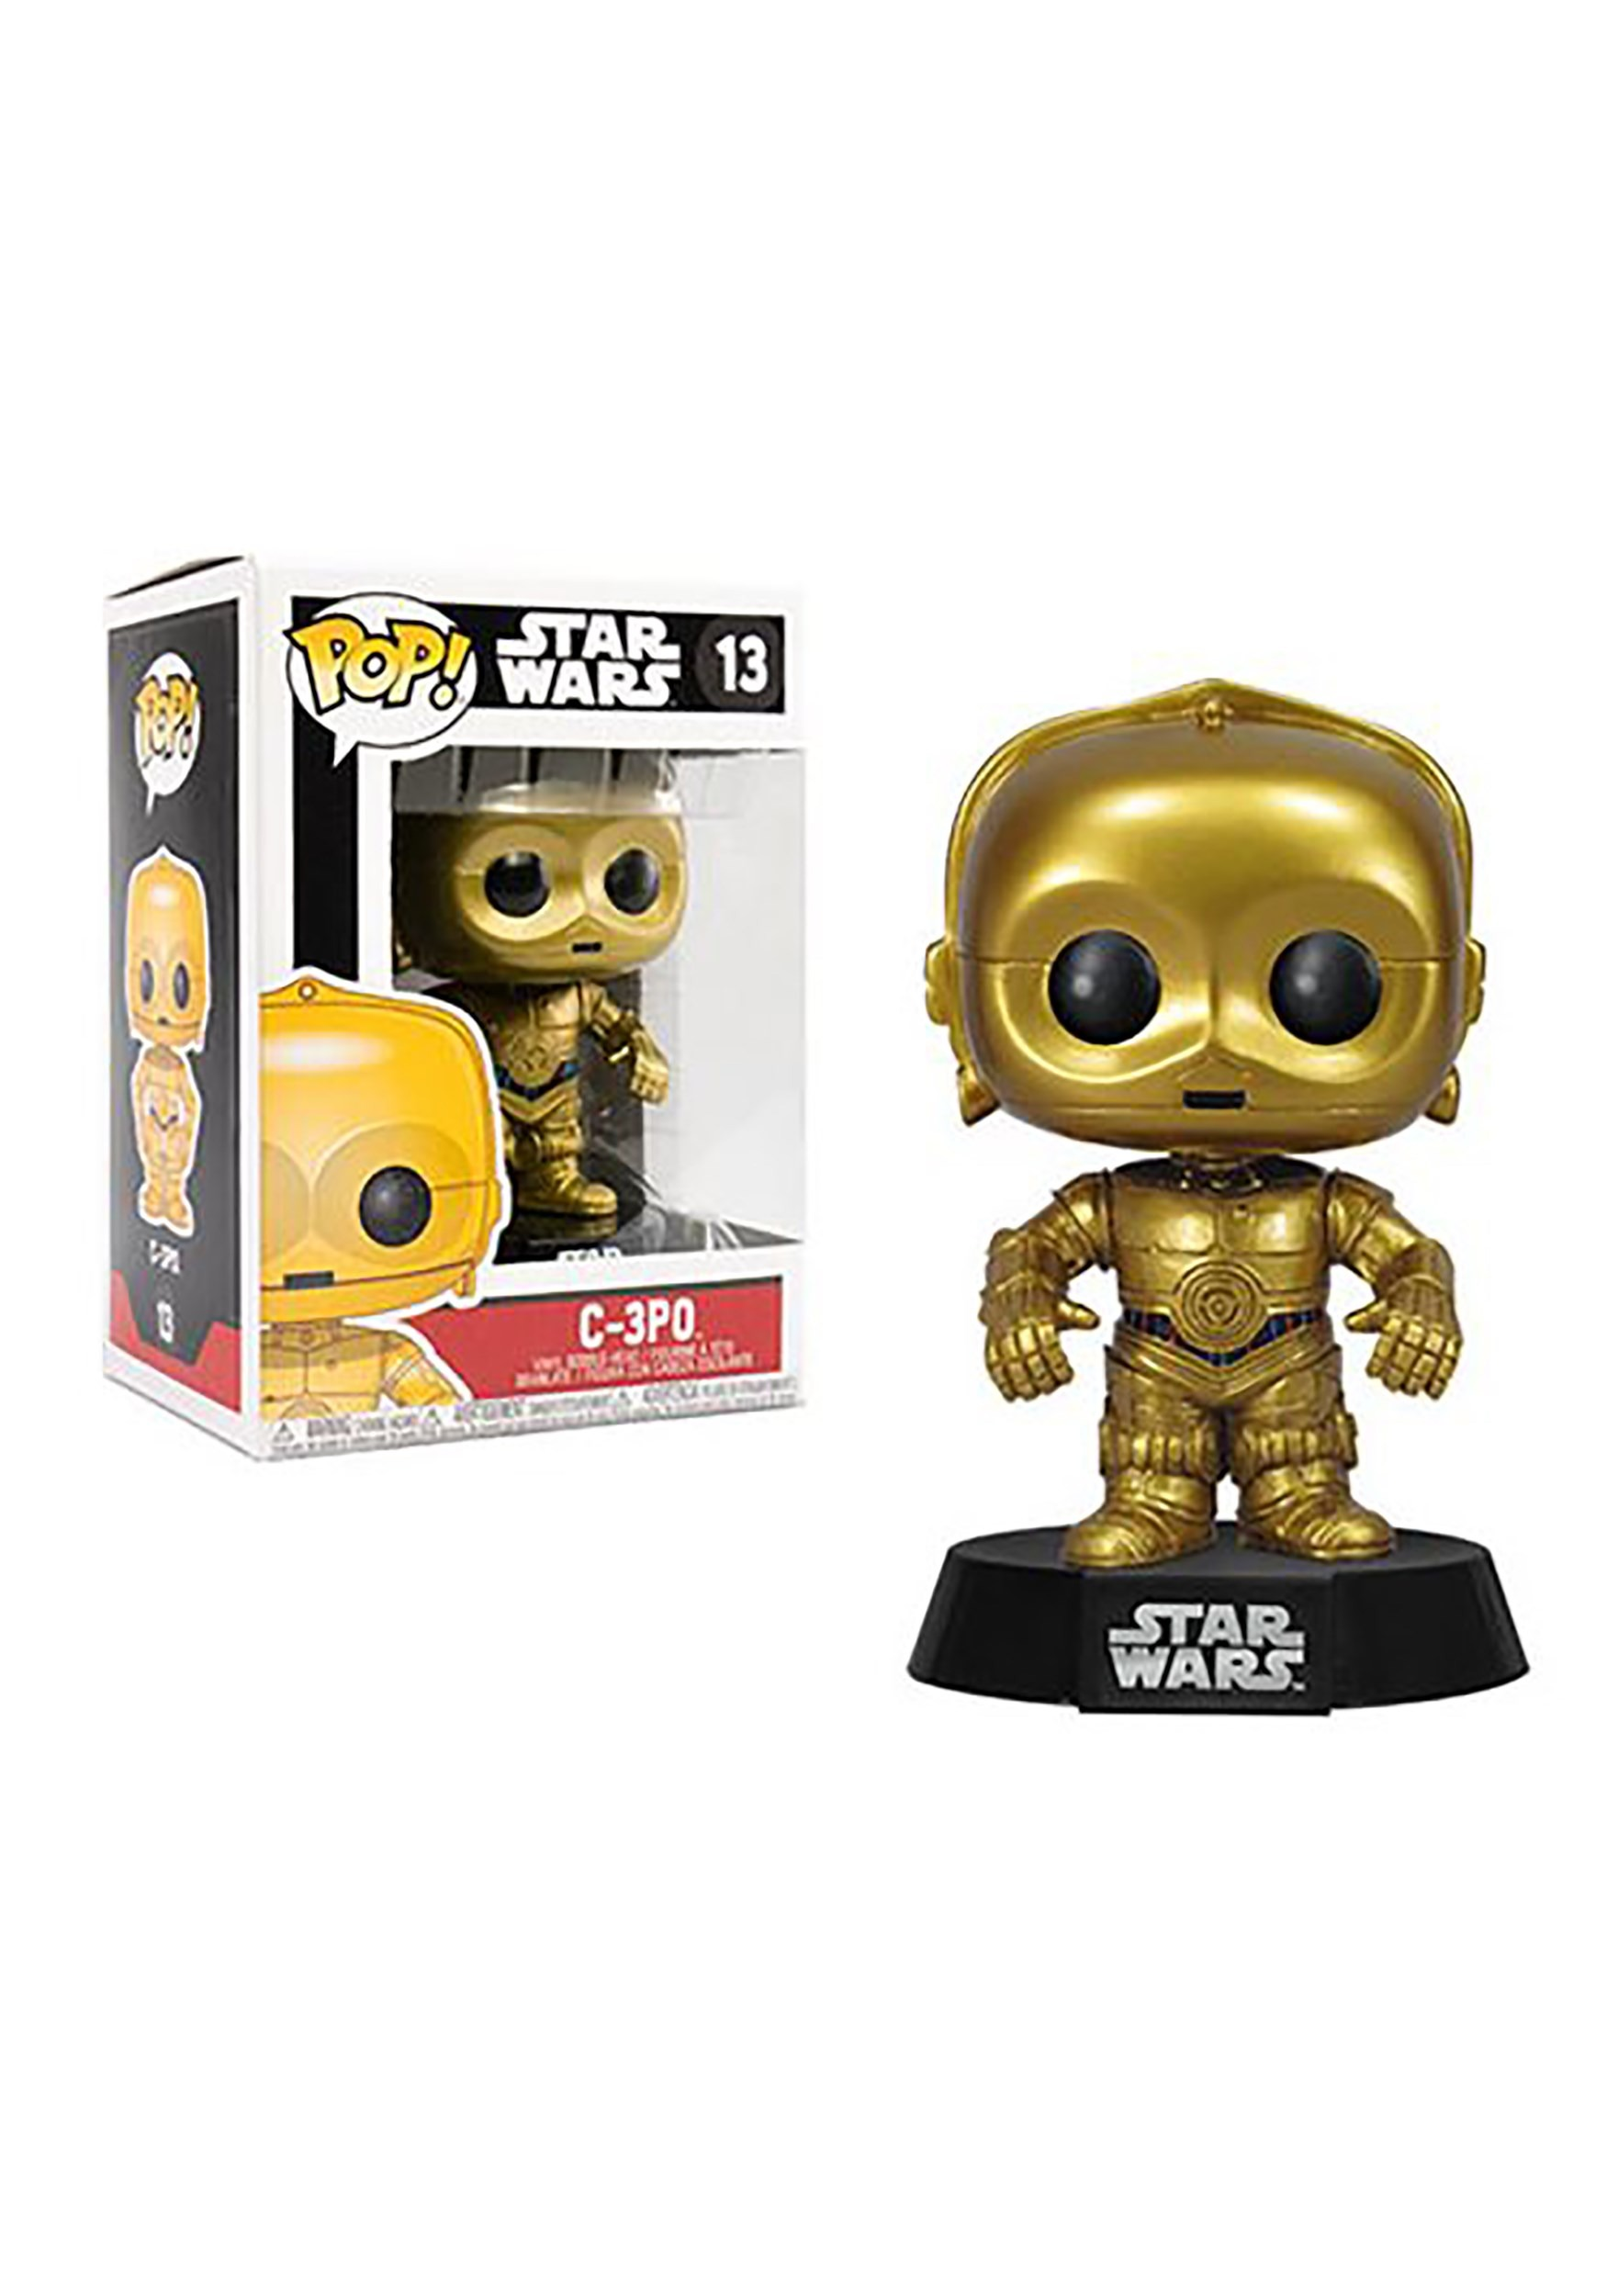 protocol droid with Pop Star Wars C 3po Bobble Head on Pop Star Wars C 3po Bobble Head moreover 361762392681 as well Mandalorian Quotes as well Backgrounds1 besides Bluetooth Versions Walkthrough And Bluetooth 4 0 Low Energy Development Resources.